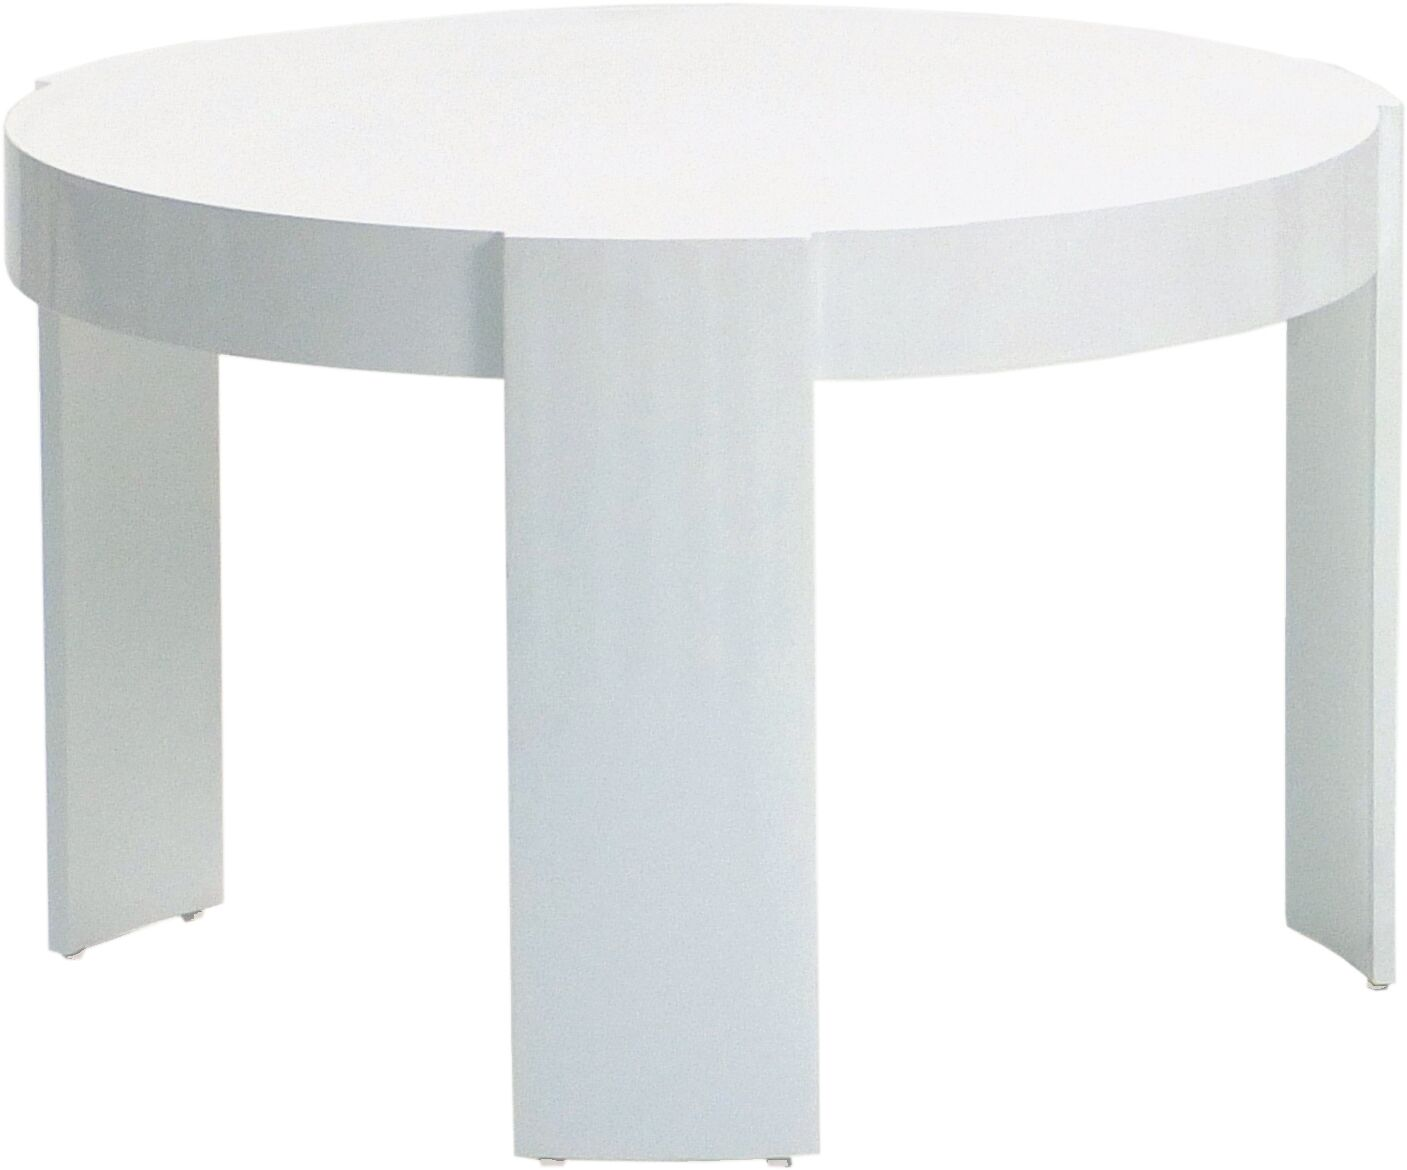 Delancey Aluminum Side Table Color: White, Table Size: Small